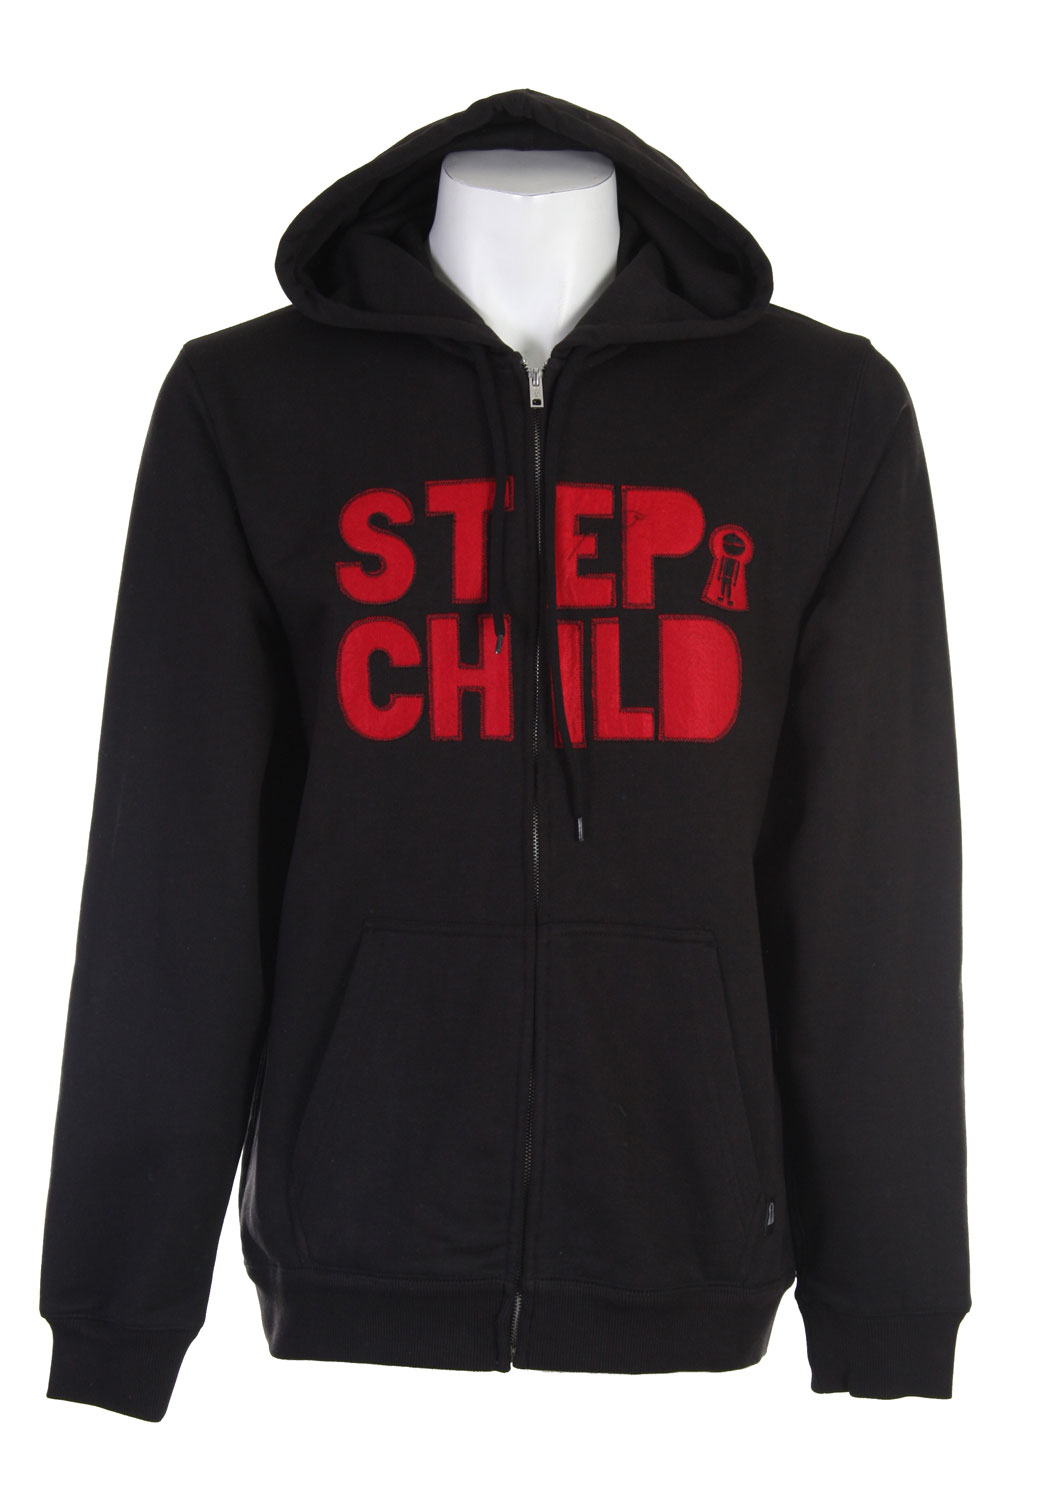 Definitely for the boarder that likes to feel relaxed, the Stepchild Block Applique hoodie is loose, stylish, and great against the elements. Made of fabric designed to make this hoodie stand out, the Stepchild logo is found on the front and stitched for a nice, clean look. It also has pockets for hands to stay comfortably warm in and can be worn casually or while riding. Perfect for guys who like an easy fit when riding.Key Features of The StepChild Switch Applique Hoodie: 500g French Terry Stitched Felt Applique Thumb Holes - $38.95